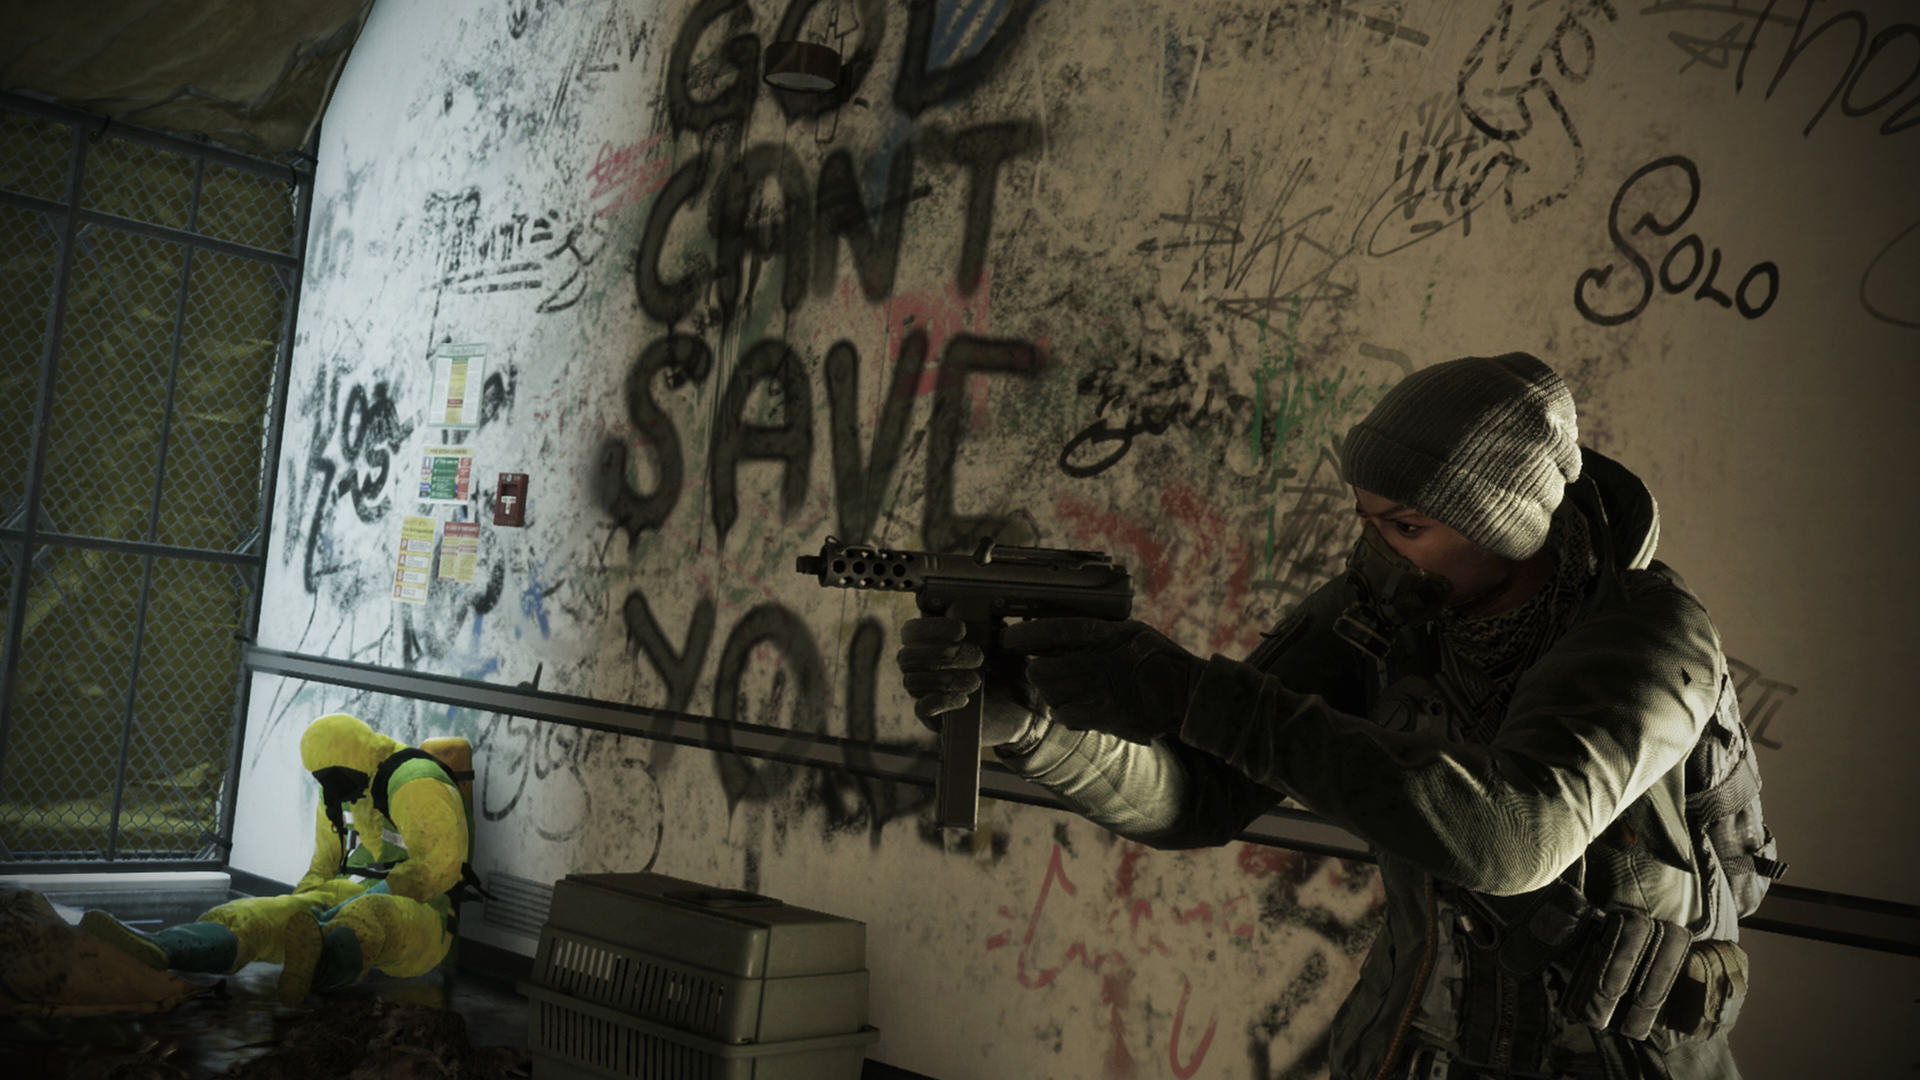 We Had An Exclusive Look At The Division Ahead Of Release Day TCTD 1601 web screenshot agent pistol